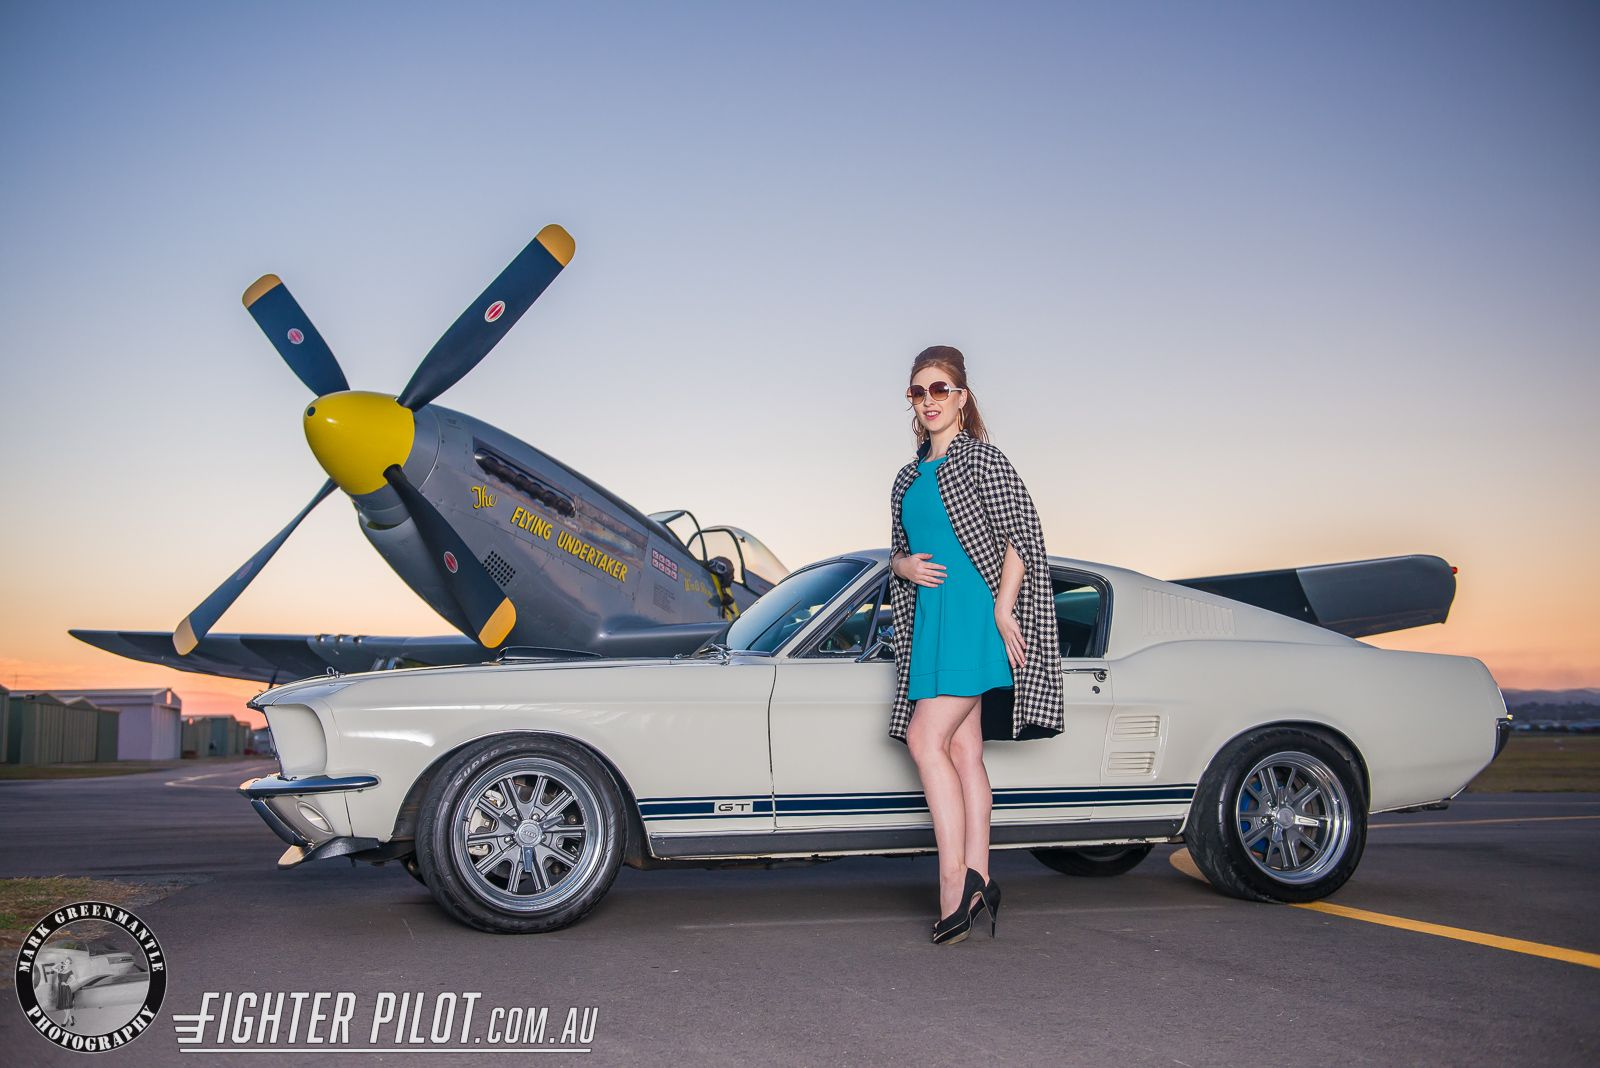 fighter pilot p 51d mustang and a fighter pilot pin up girl photography by mark greenmantle. Black Bedroom Furniture Sets. Home Design Ideas